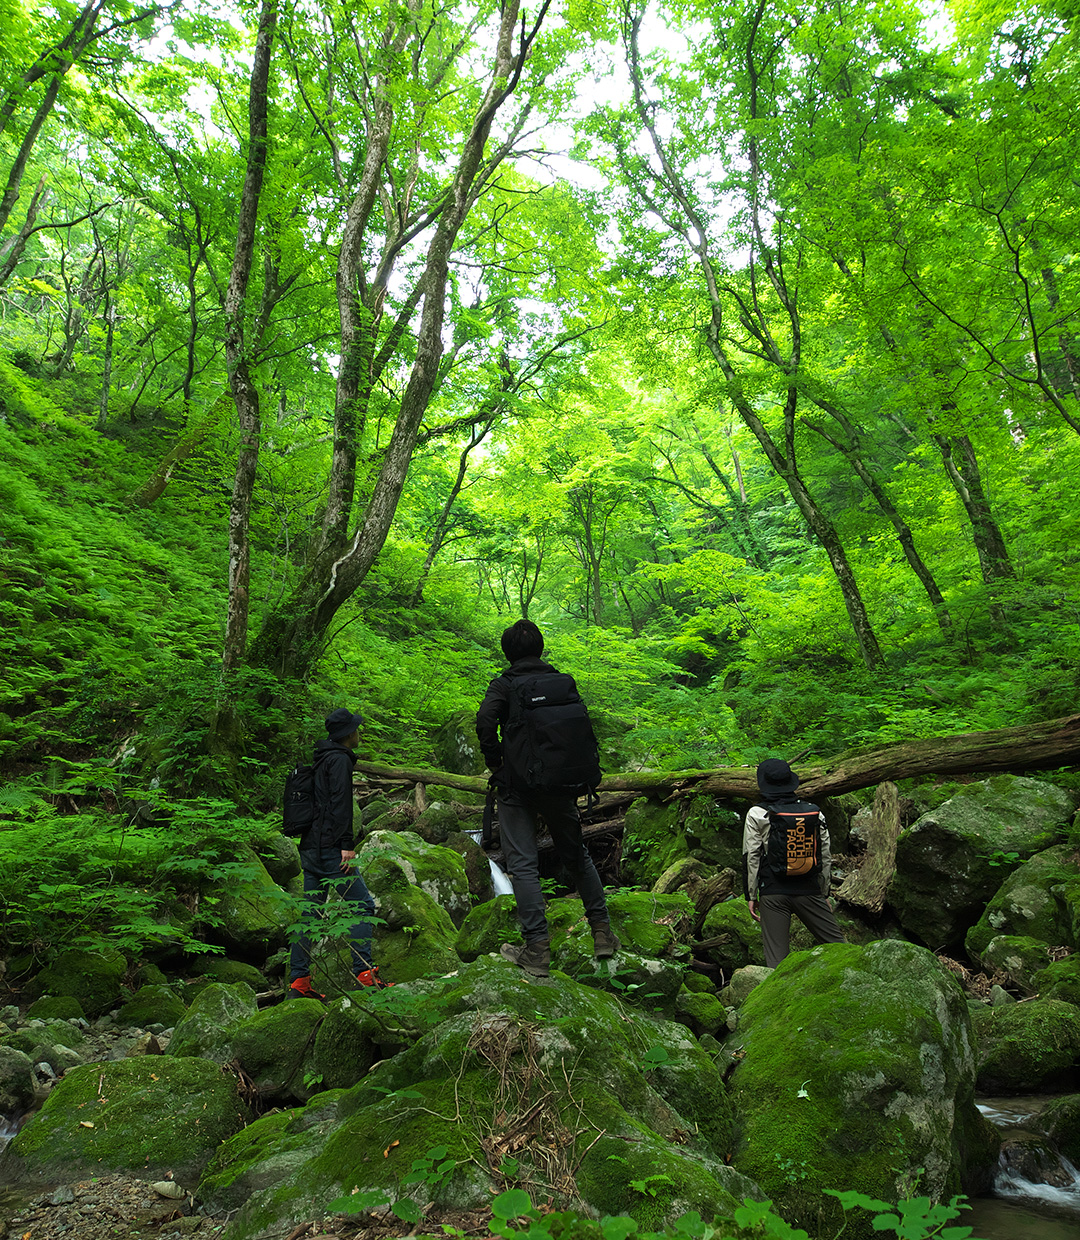 FIELD REPORT -Searching for clues from nature-